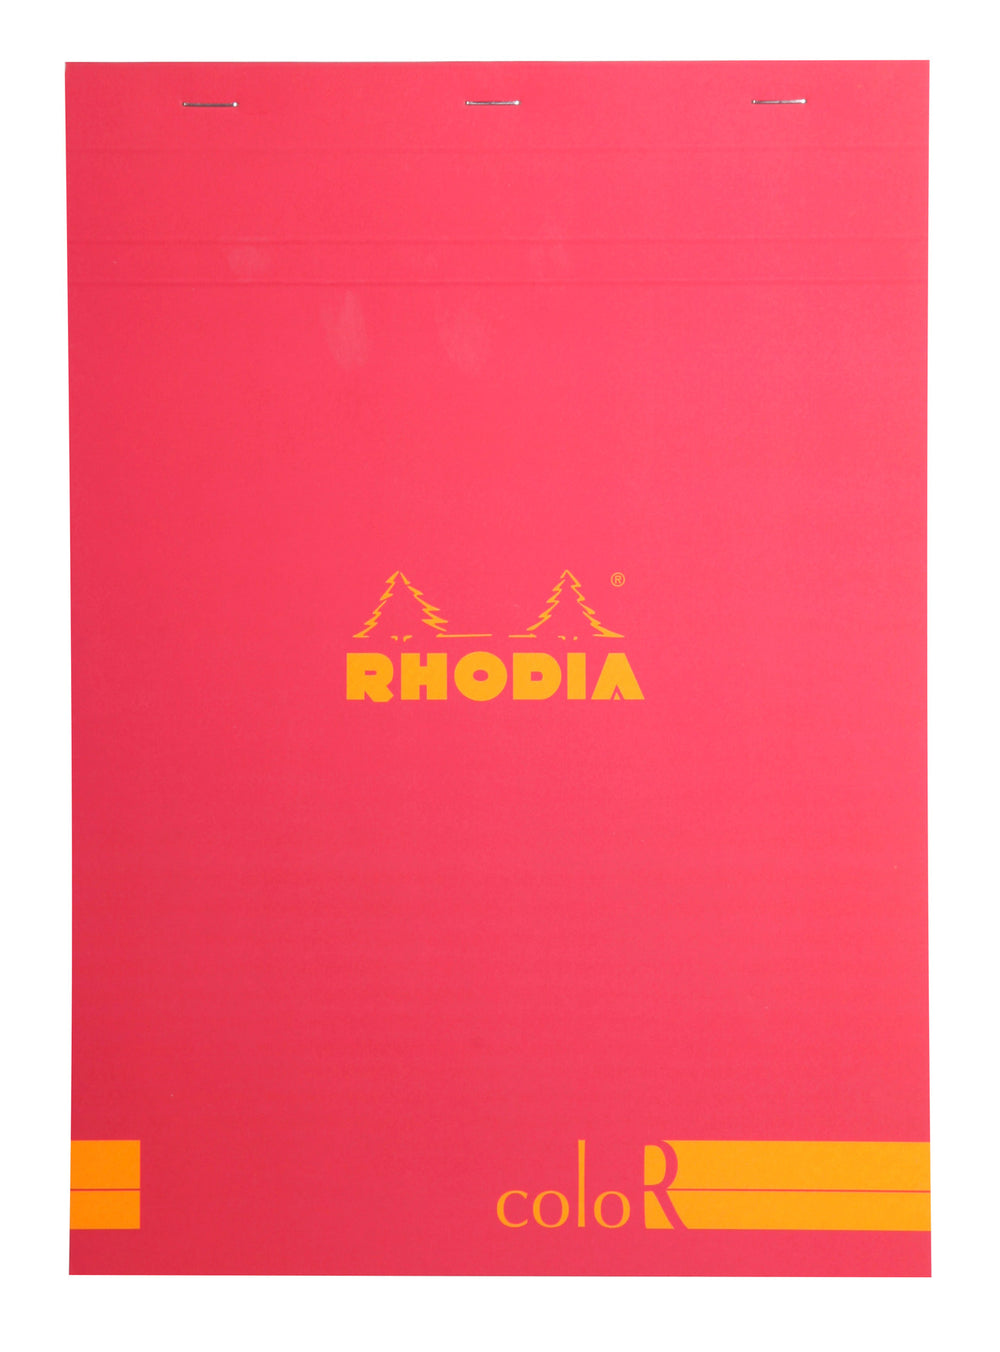 Rhodia ColoR #18 Raspberry